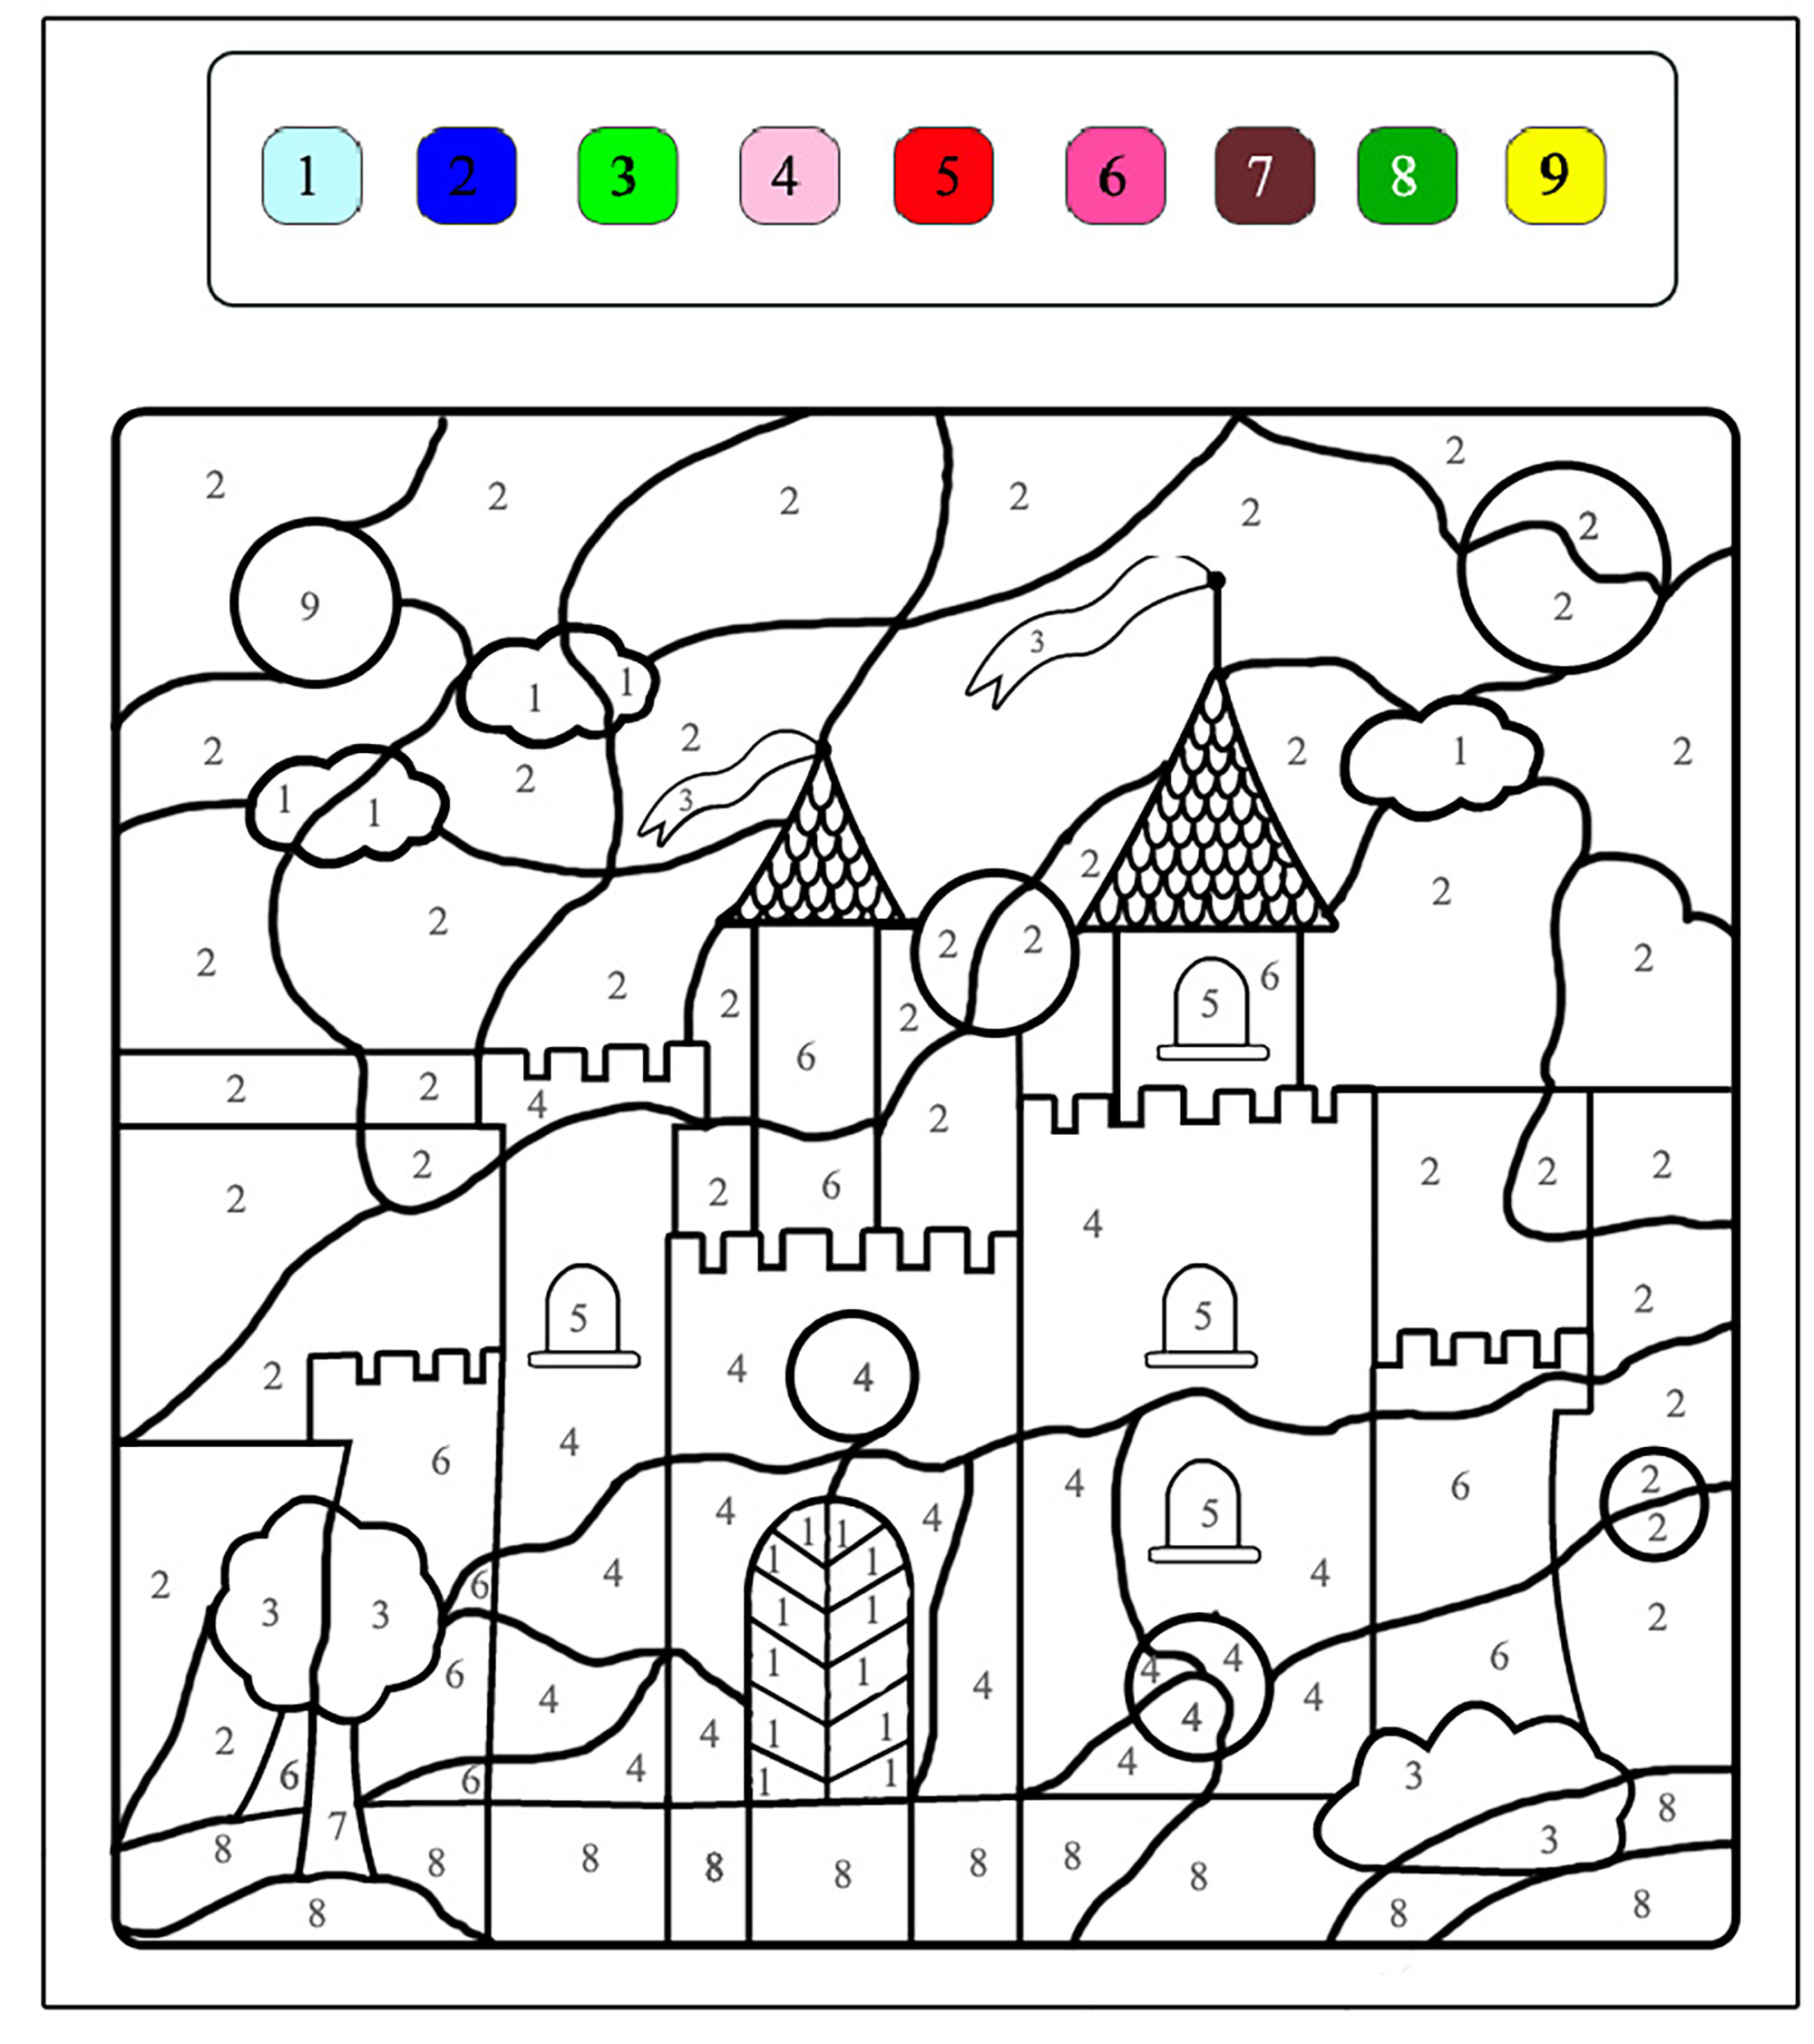 Magical castle - Magical coloring pages for kids to print & color